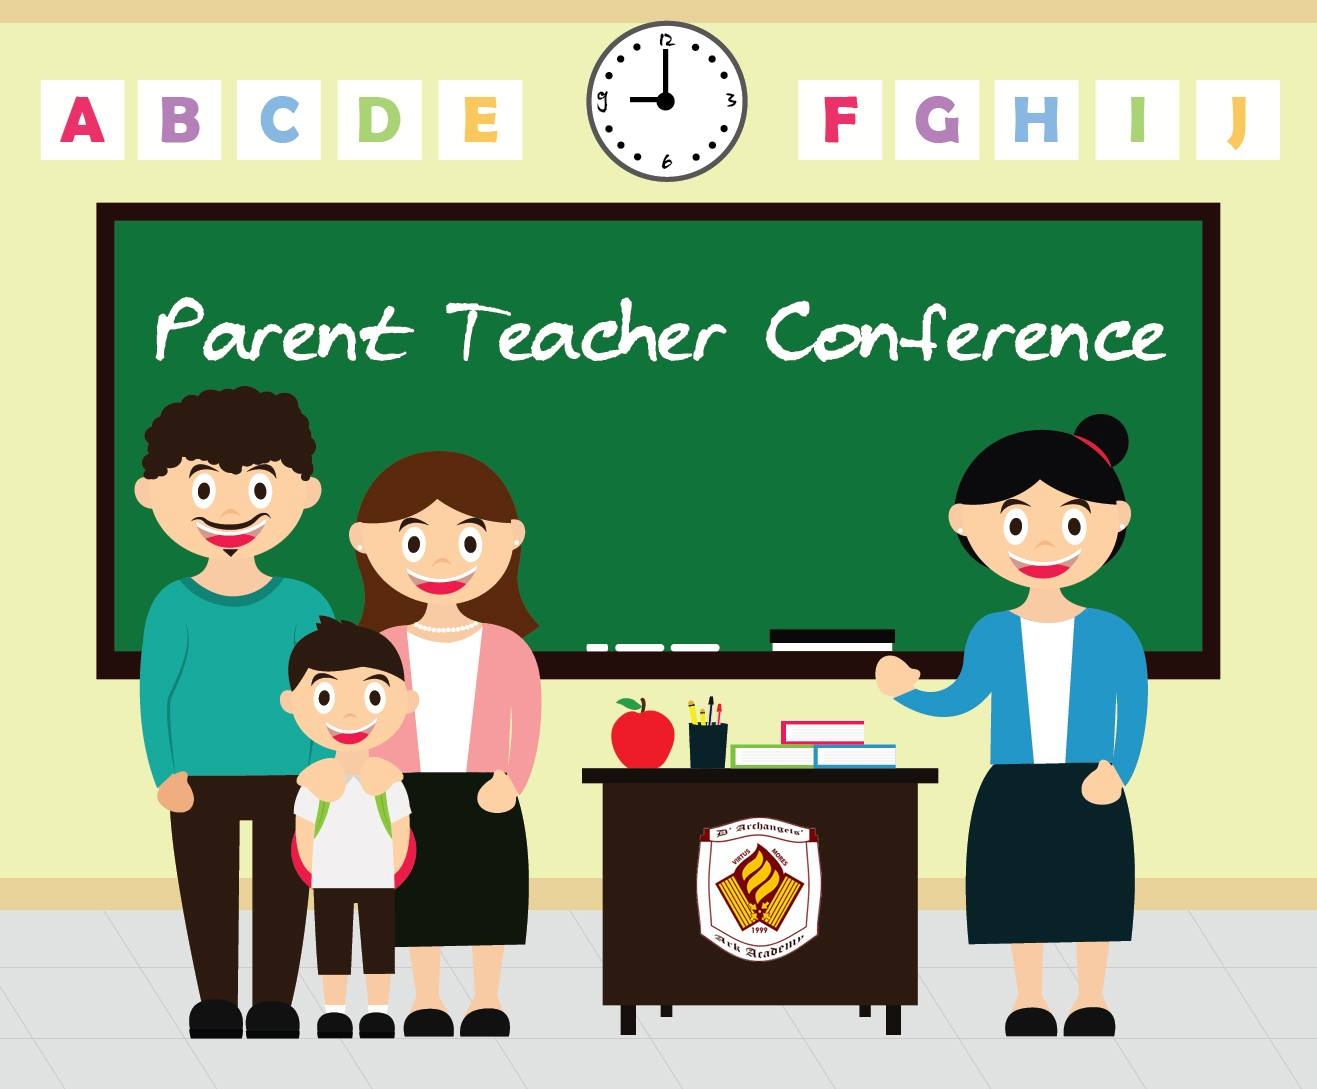 Parent Teacher Conference